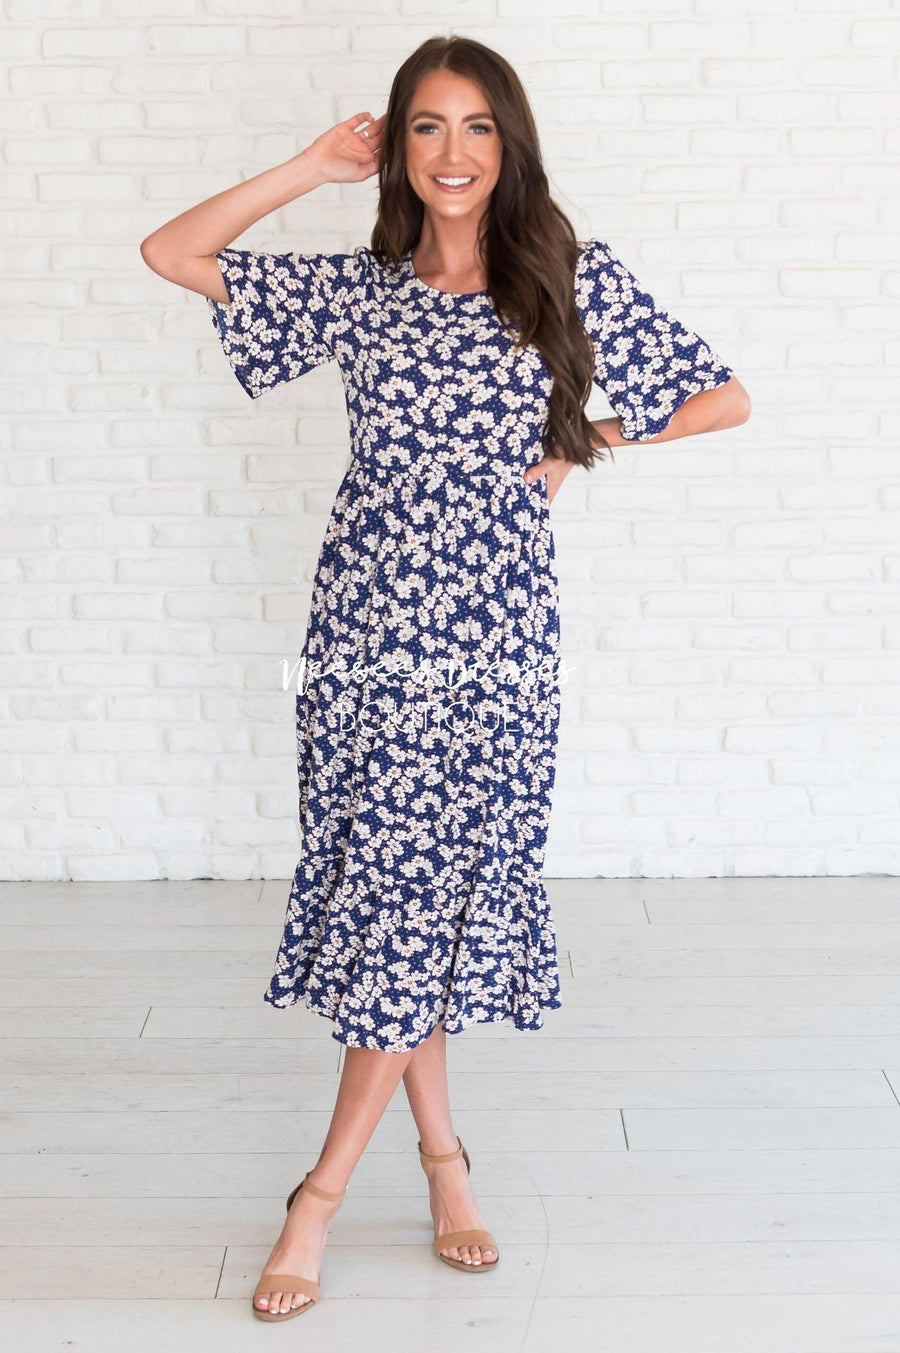 The Maisy Daisy Dress